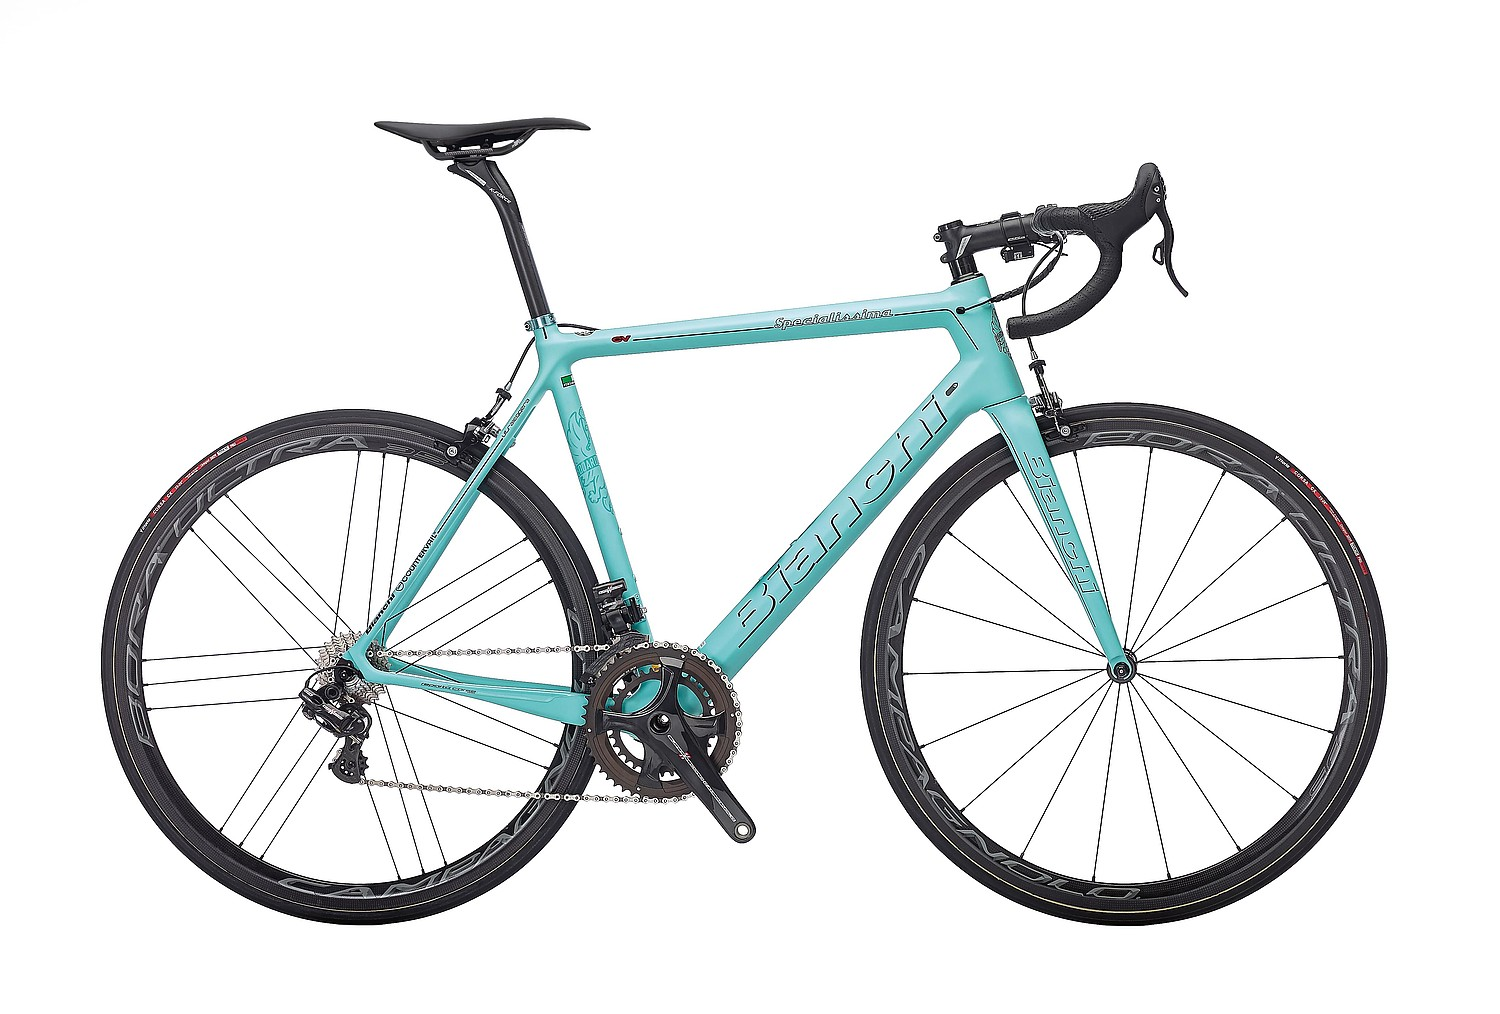 Bianchi Specialissima 2016